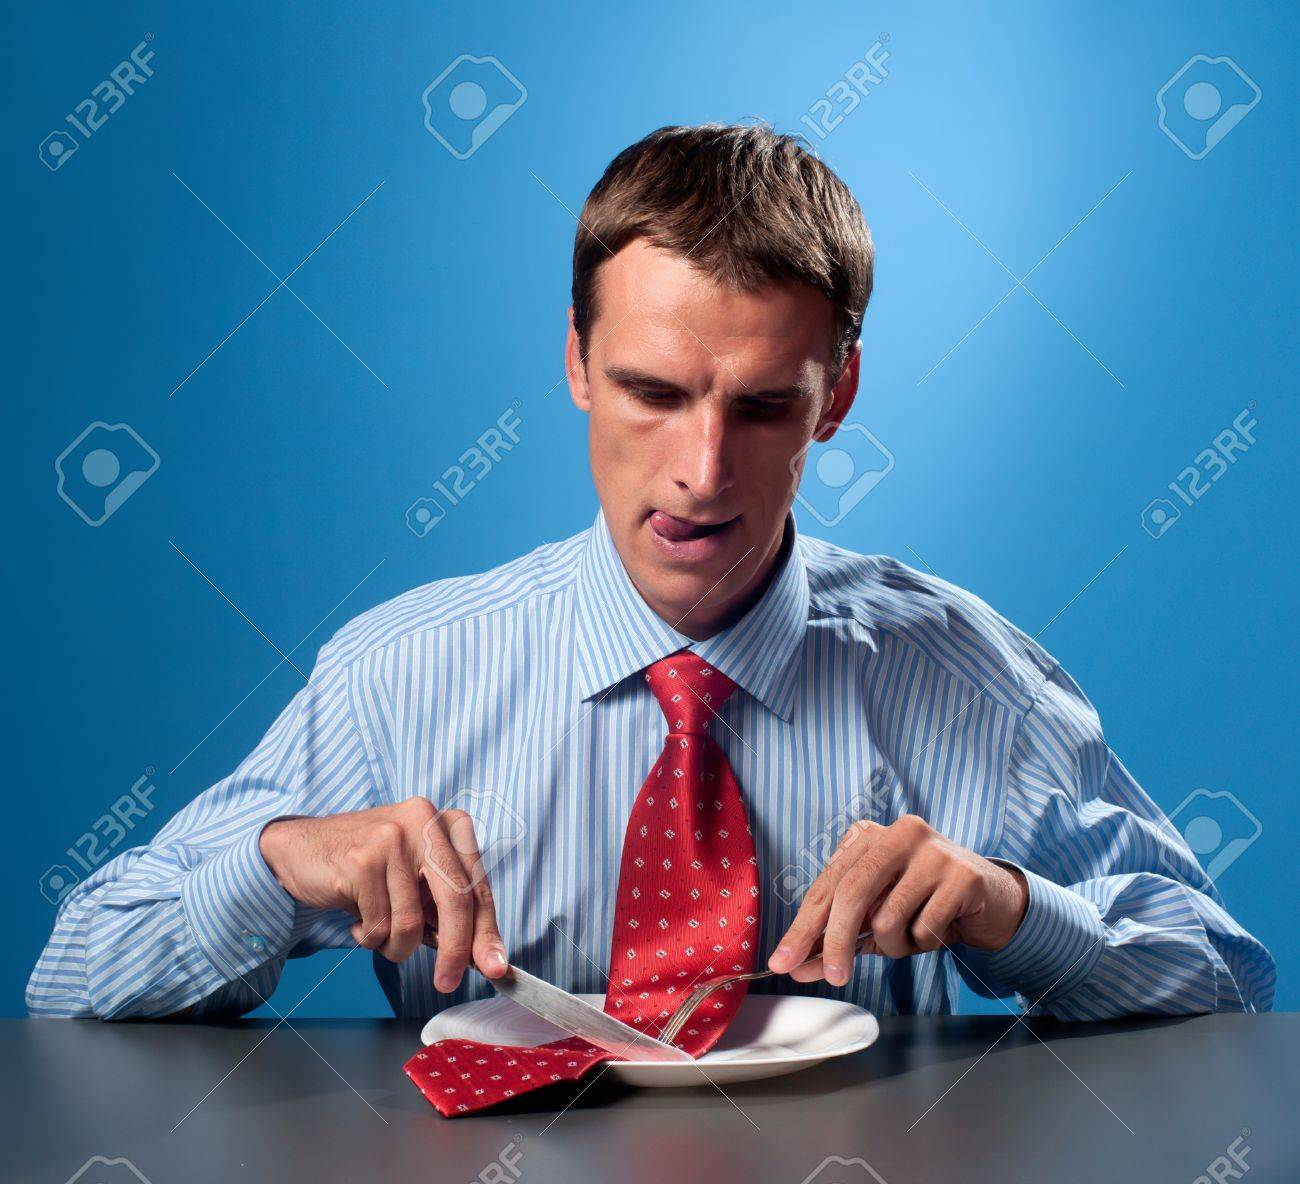 young man eating his red tie Stock Photo - 11035272